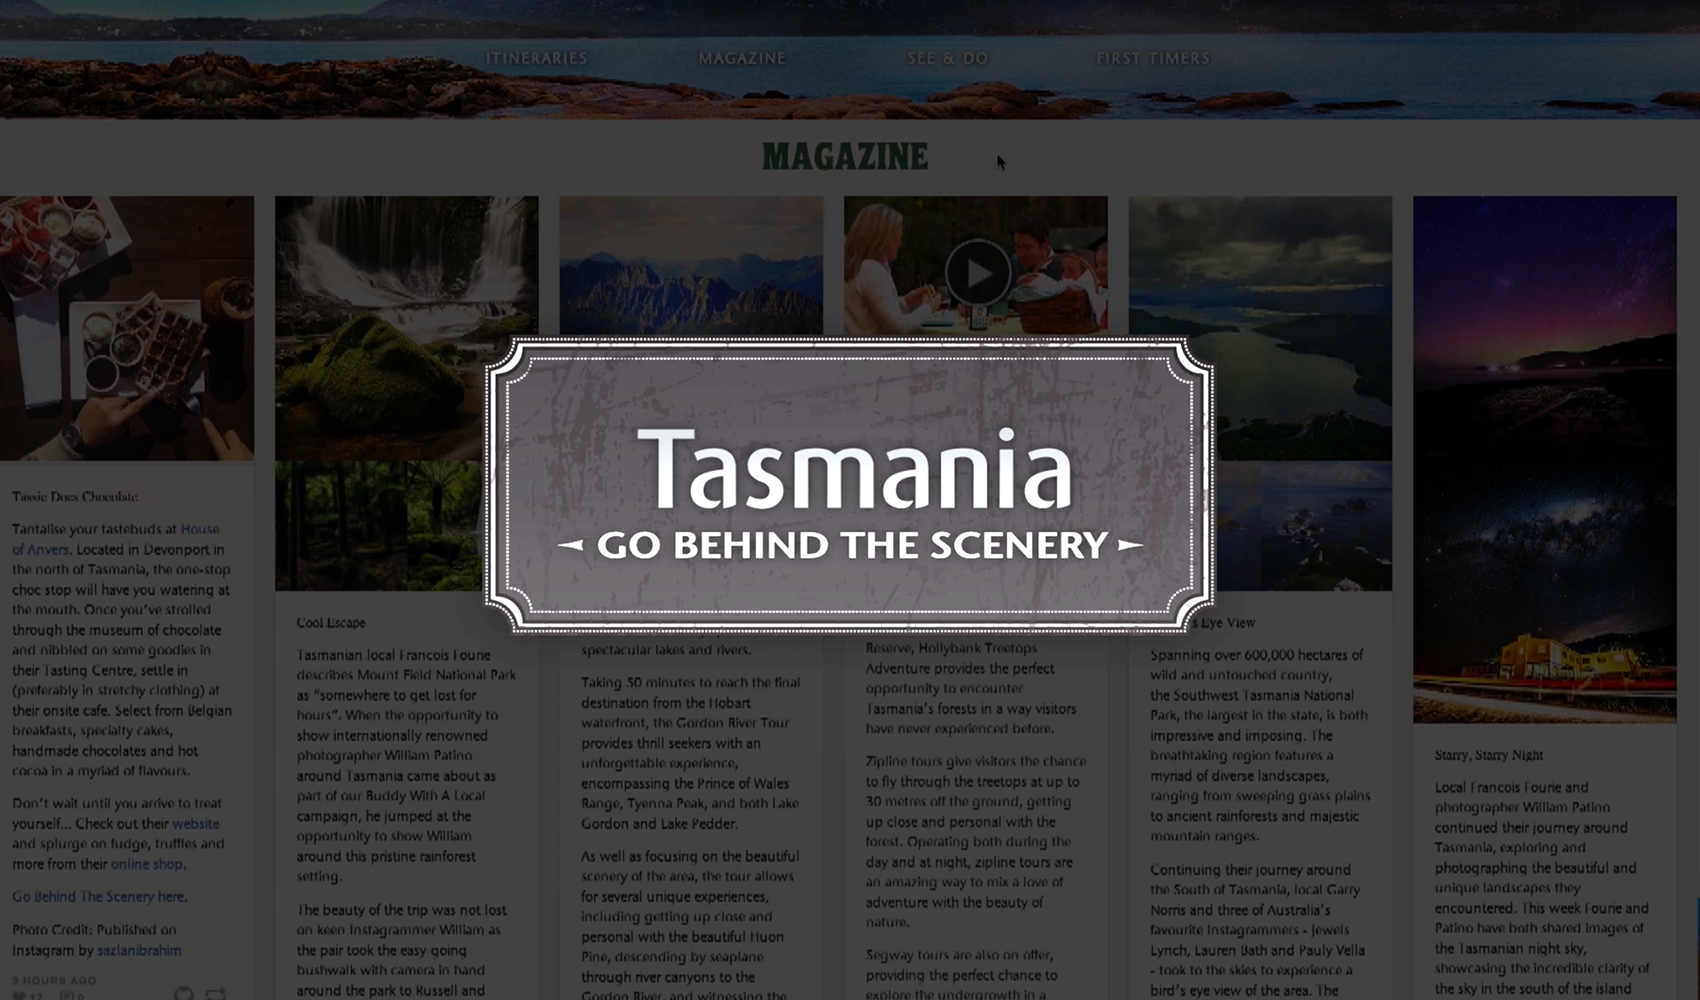 'Go Behind the Scenery' Campaign Case Study